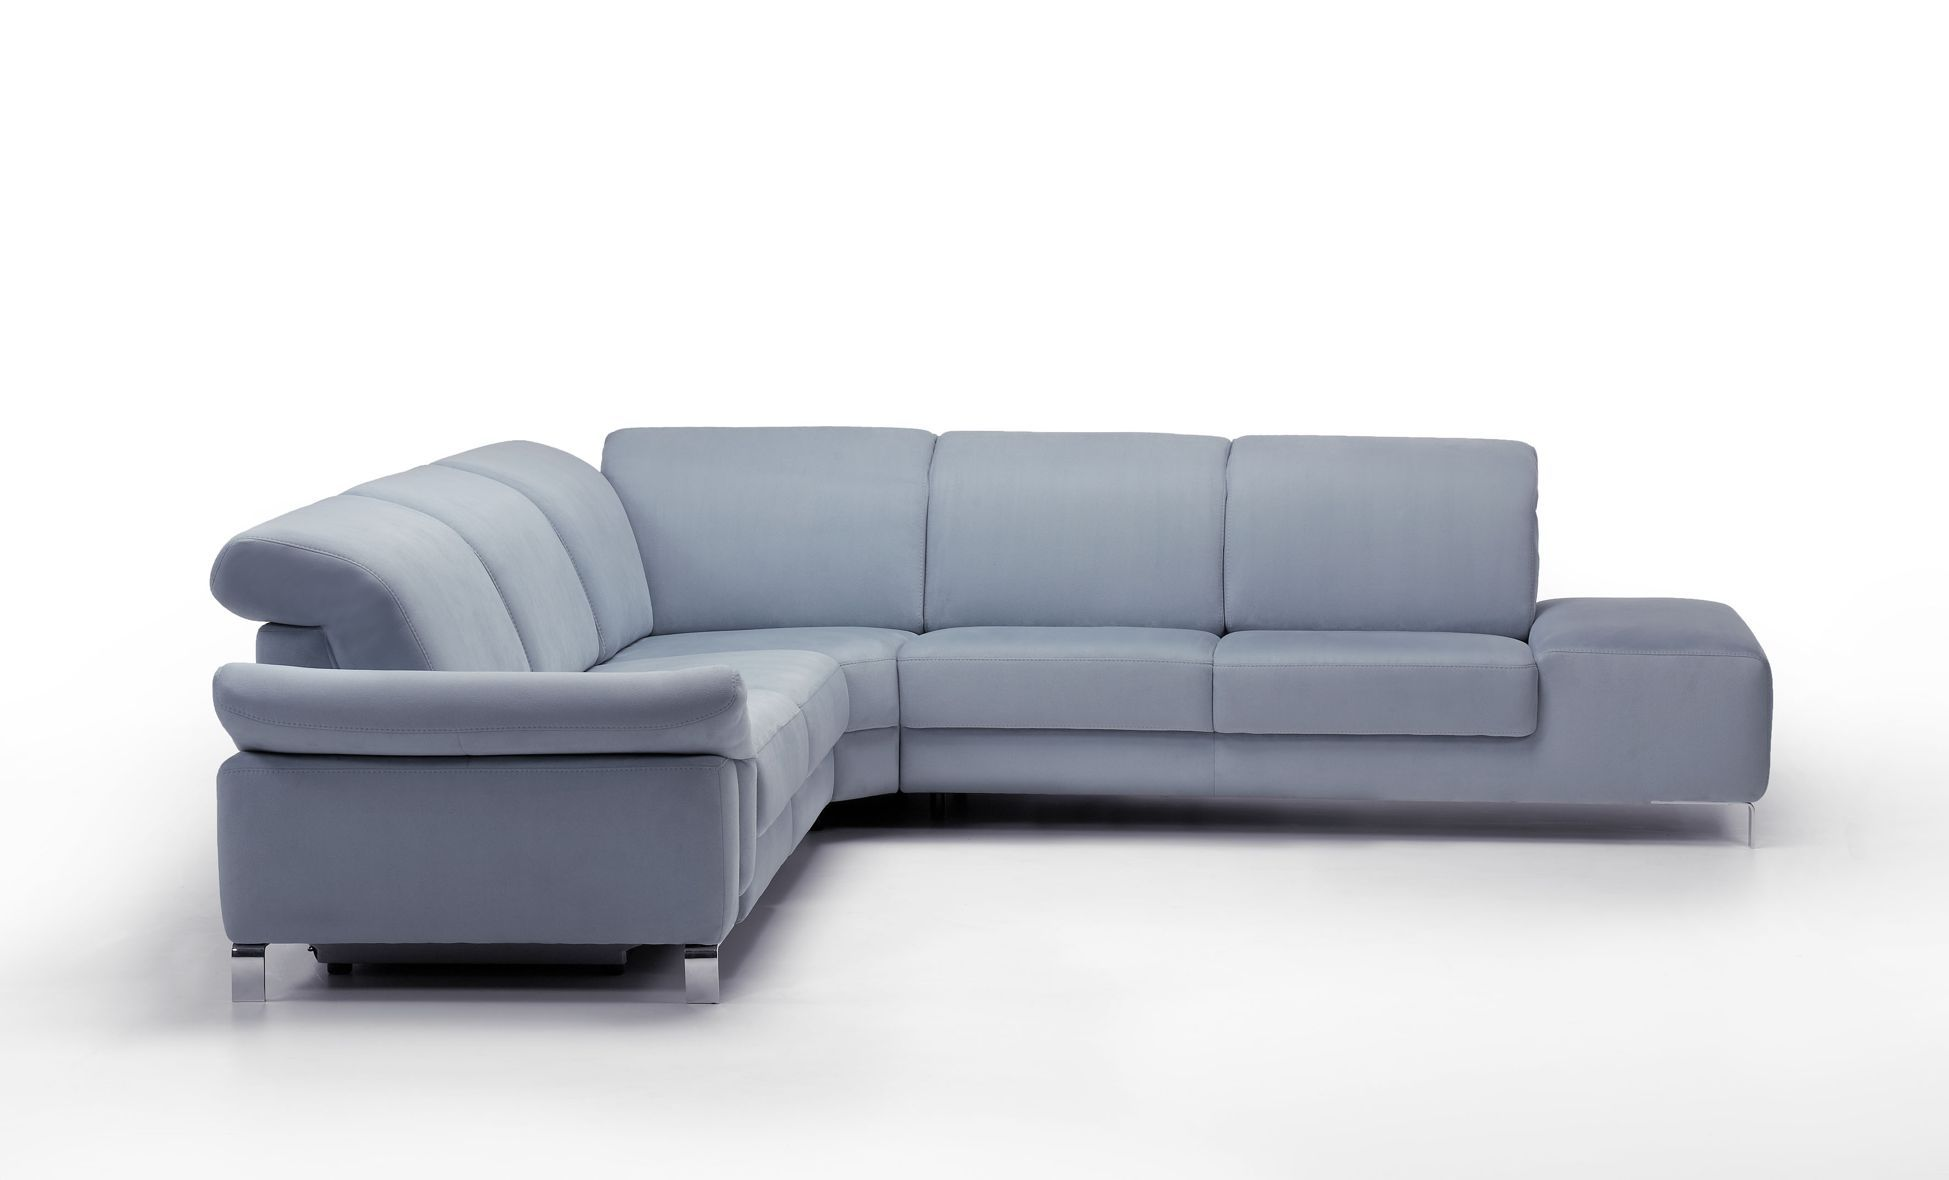 Barbados Modern Sectional Sofa by ROM